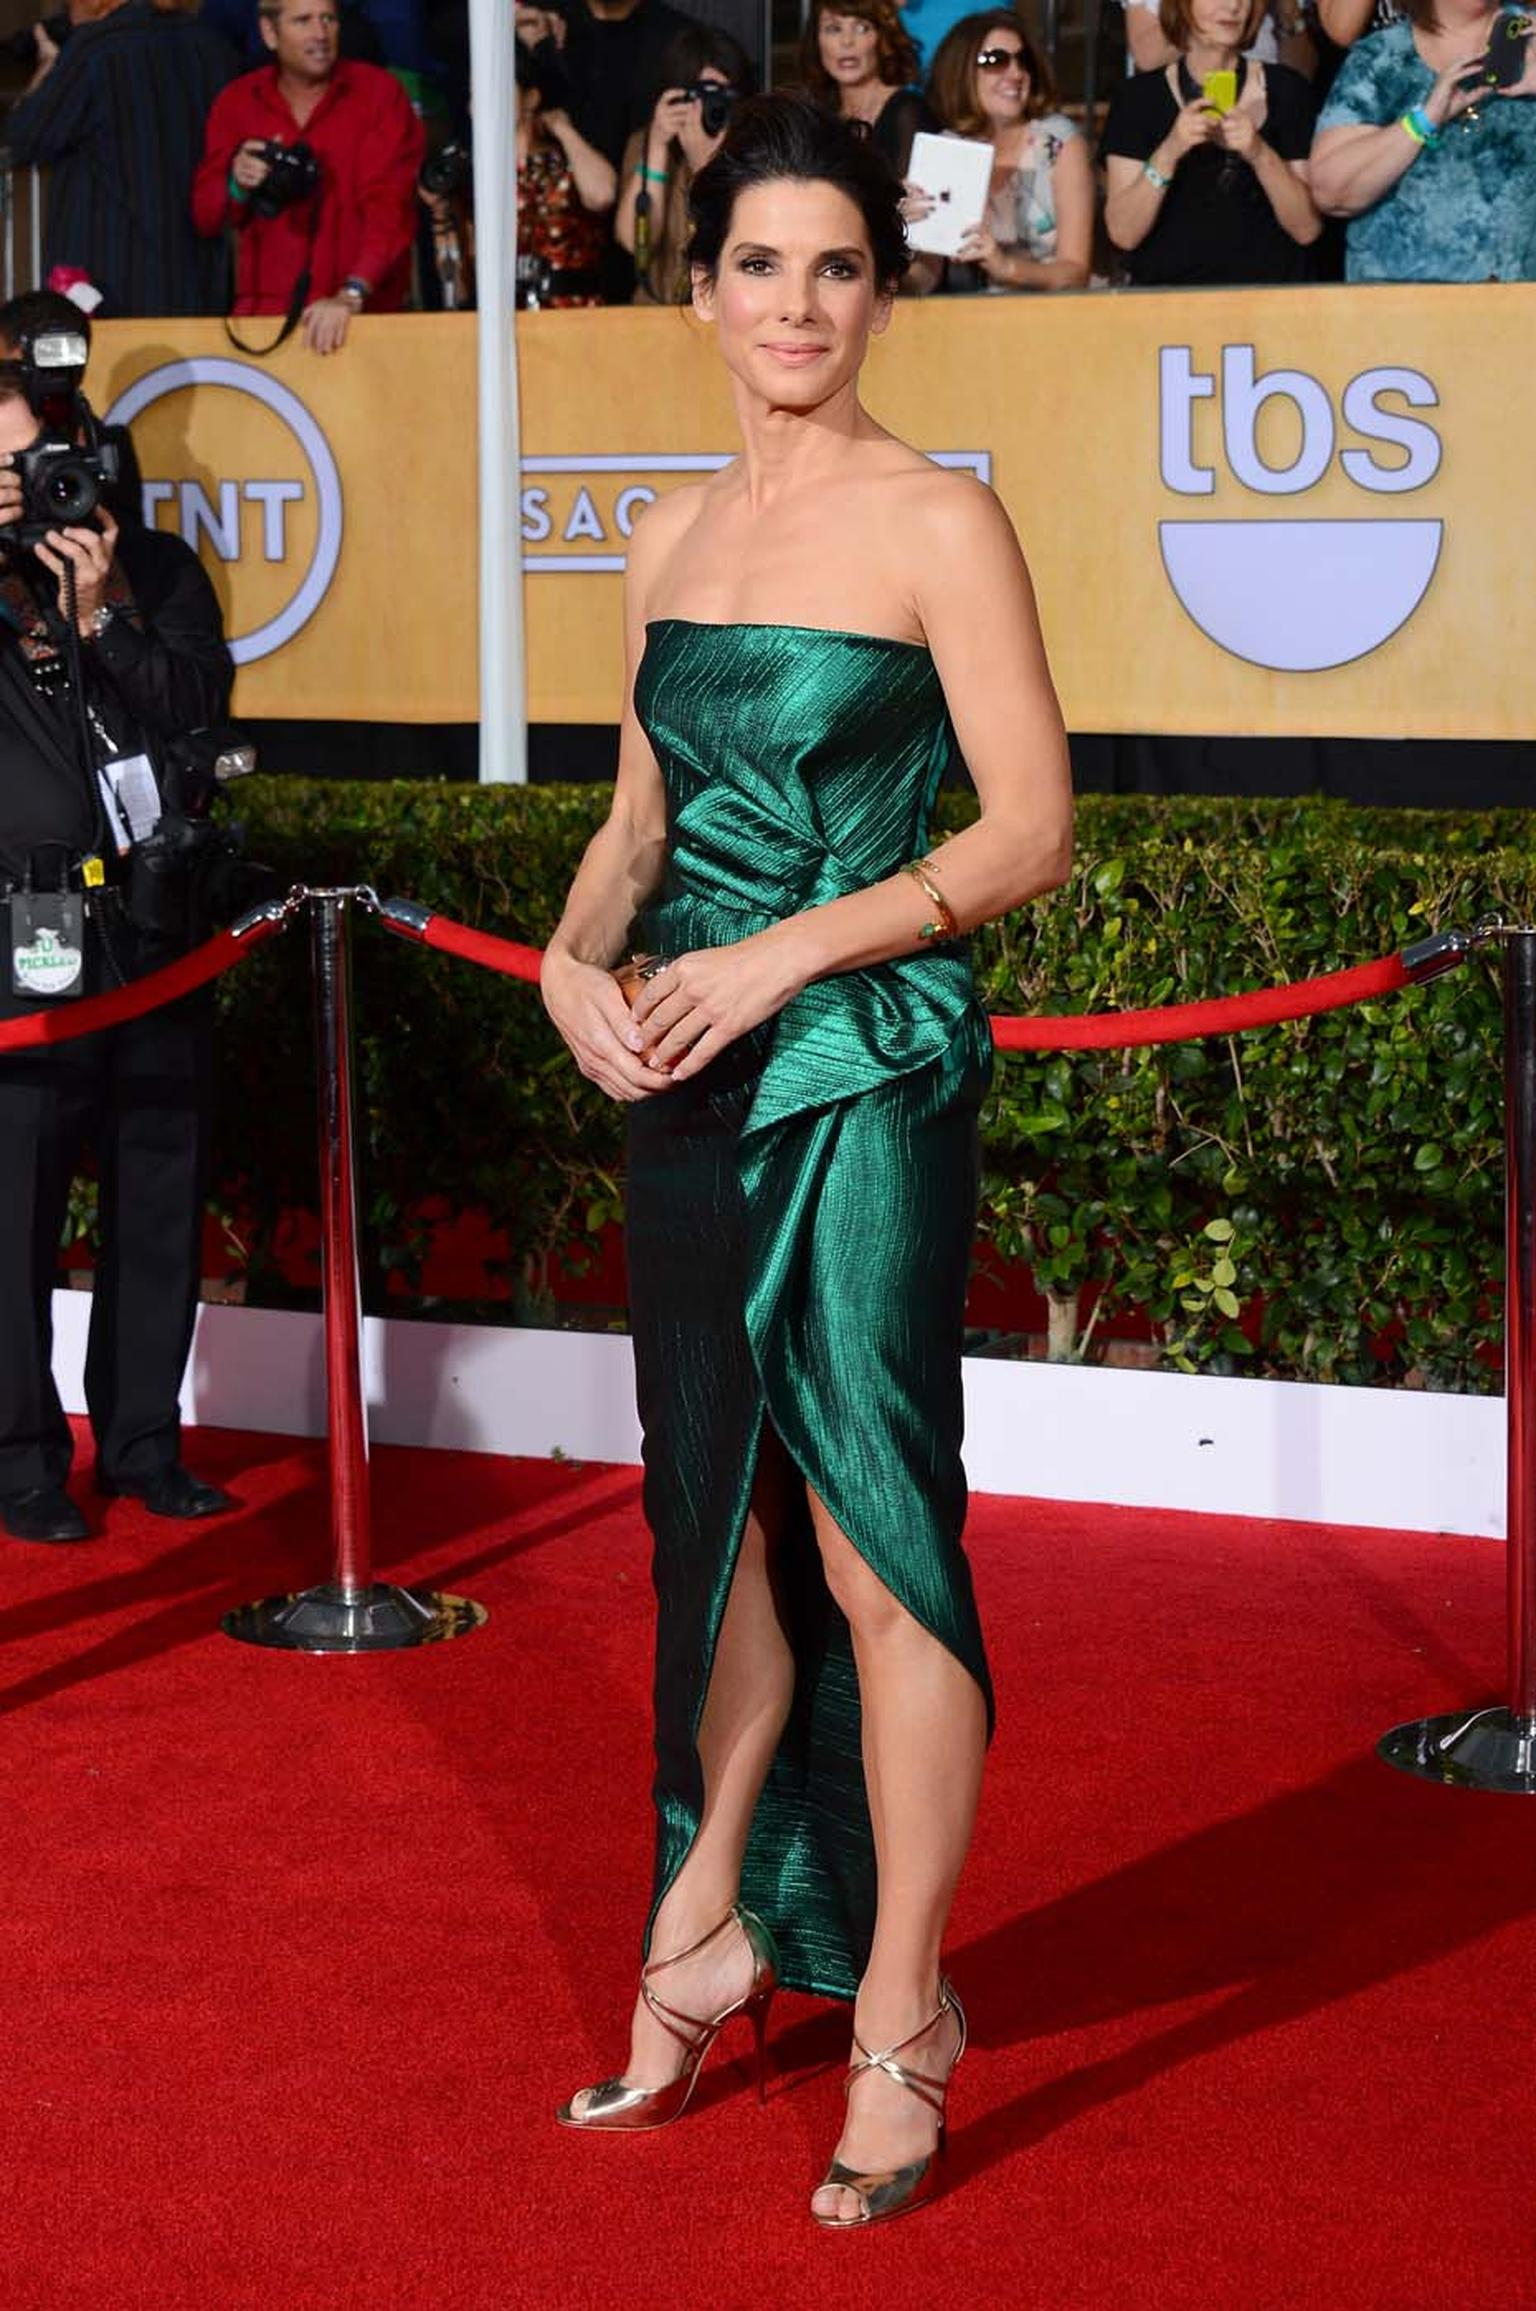 Sandra Bullock at the Screen Actors Guild Awards in January 2014 wearing an emerald-green Lanvin dress and Fred Leighton jewellery